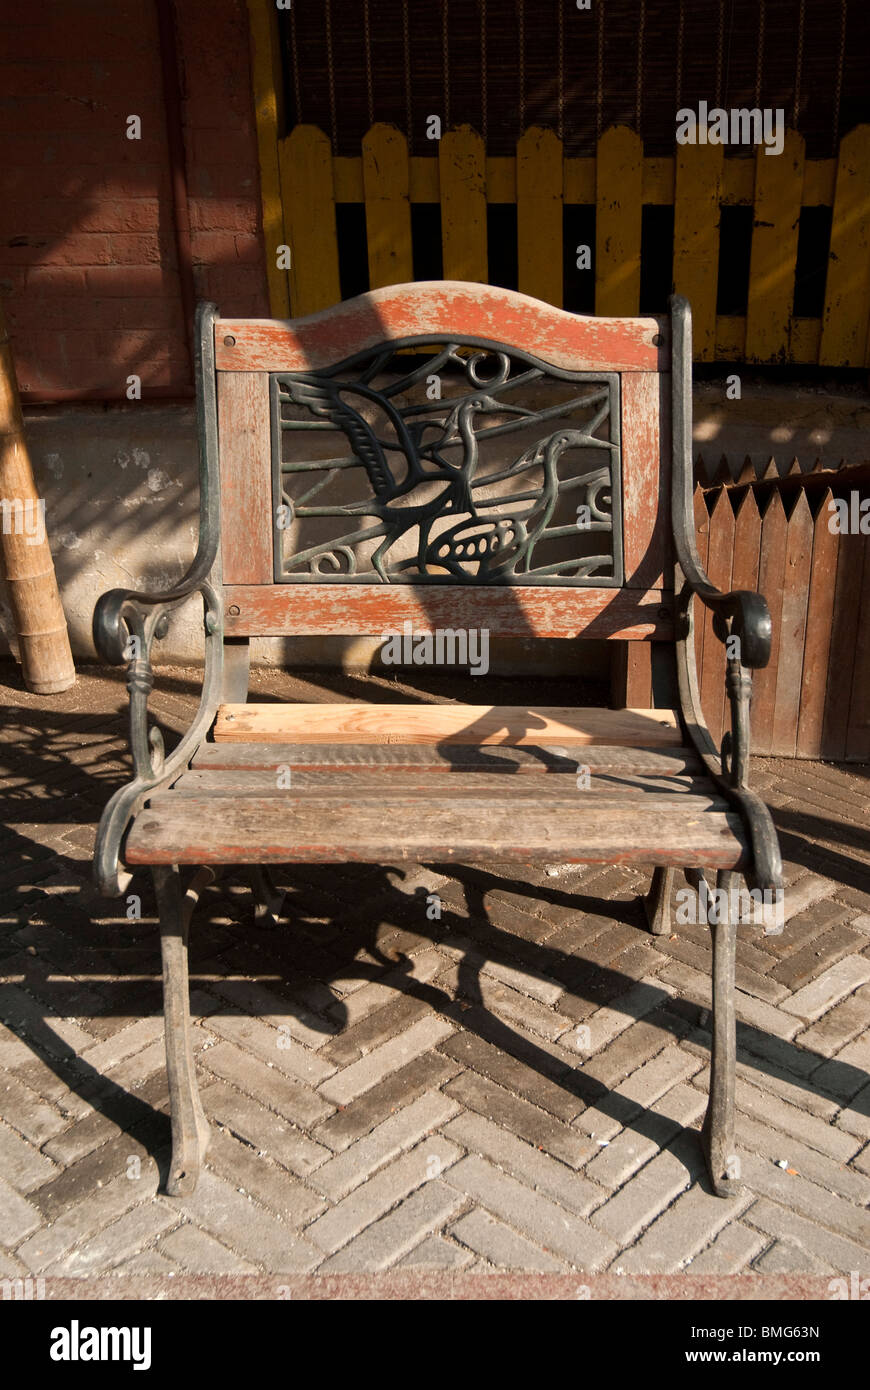 Miraculous Old Lounge Chair In Sunshine Shanghai China Stock Photo Gmtry Best Dining Table And Chair Ideas Images Gmtryco